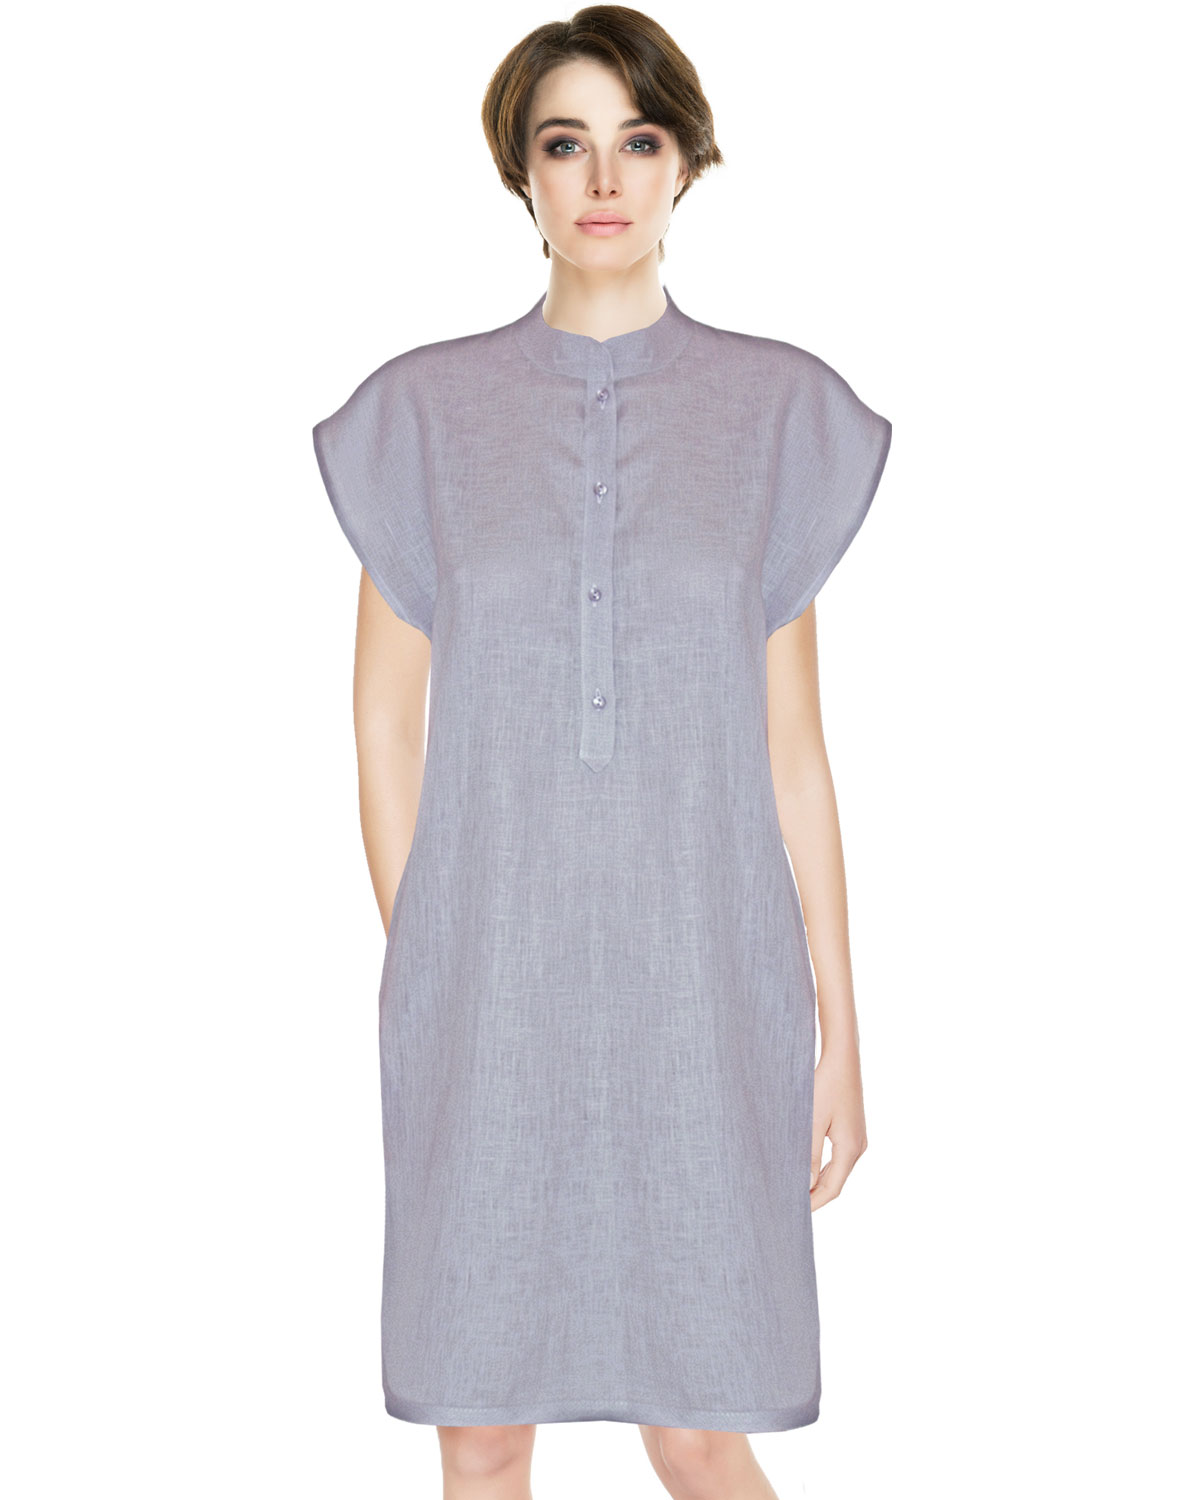 Short Sleeve Nightgown, Tosca Collection